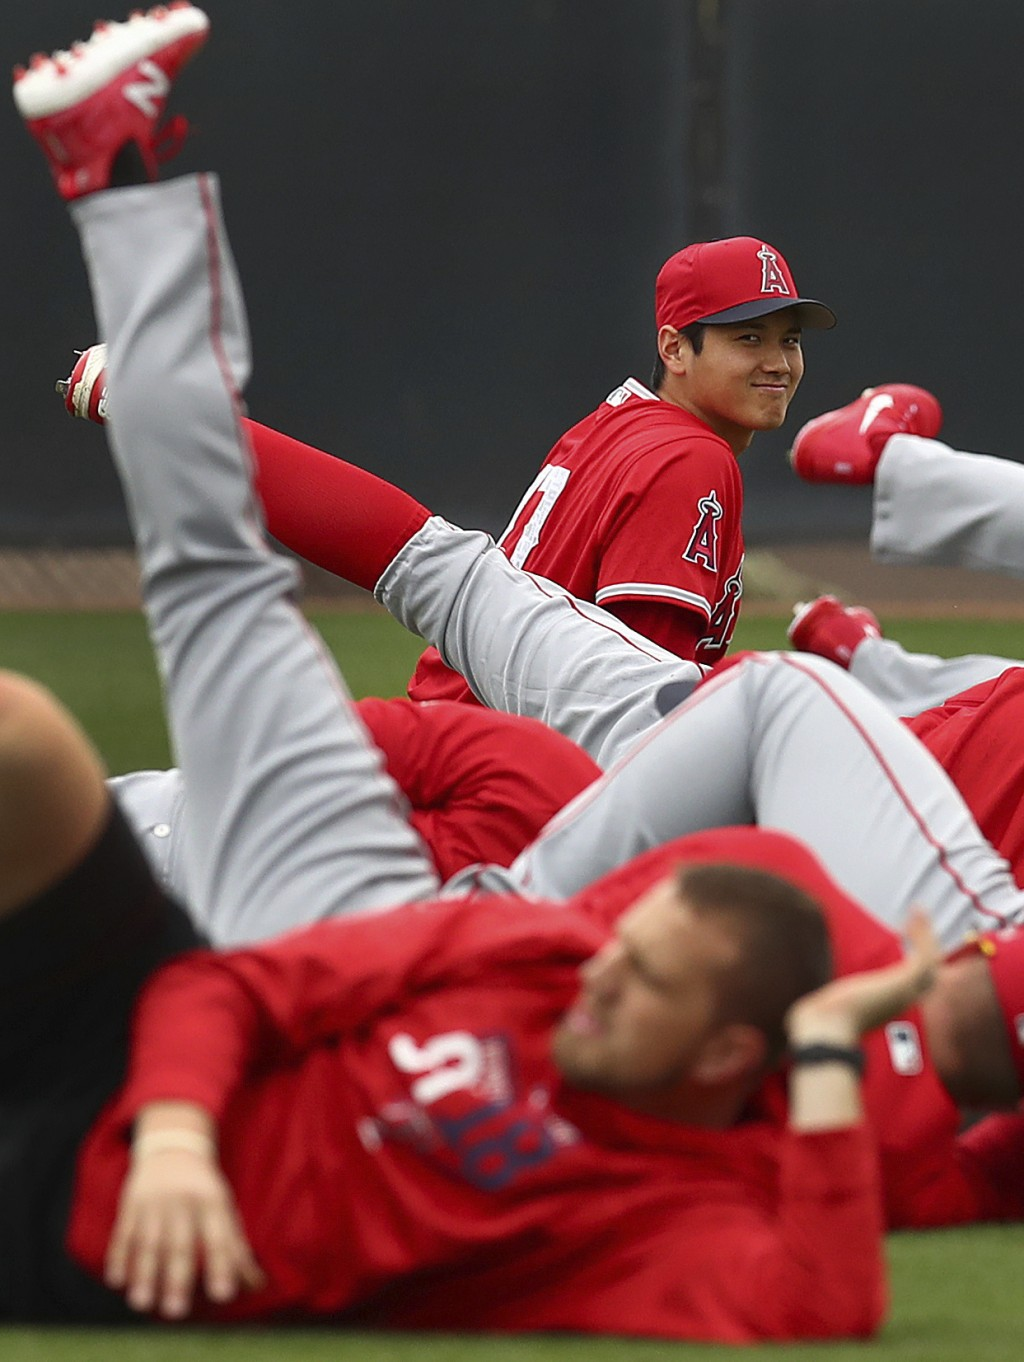 Los Angeles Angels' Shohei Ohtani smiles during a stretching exercise at a spring training baseball practice on Wednesday, Feb. 14, 2018, in Tempe, Ar